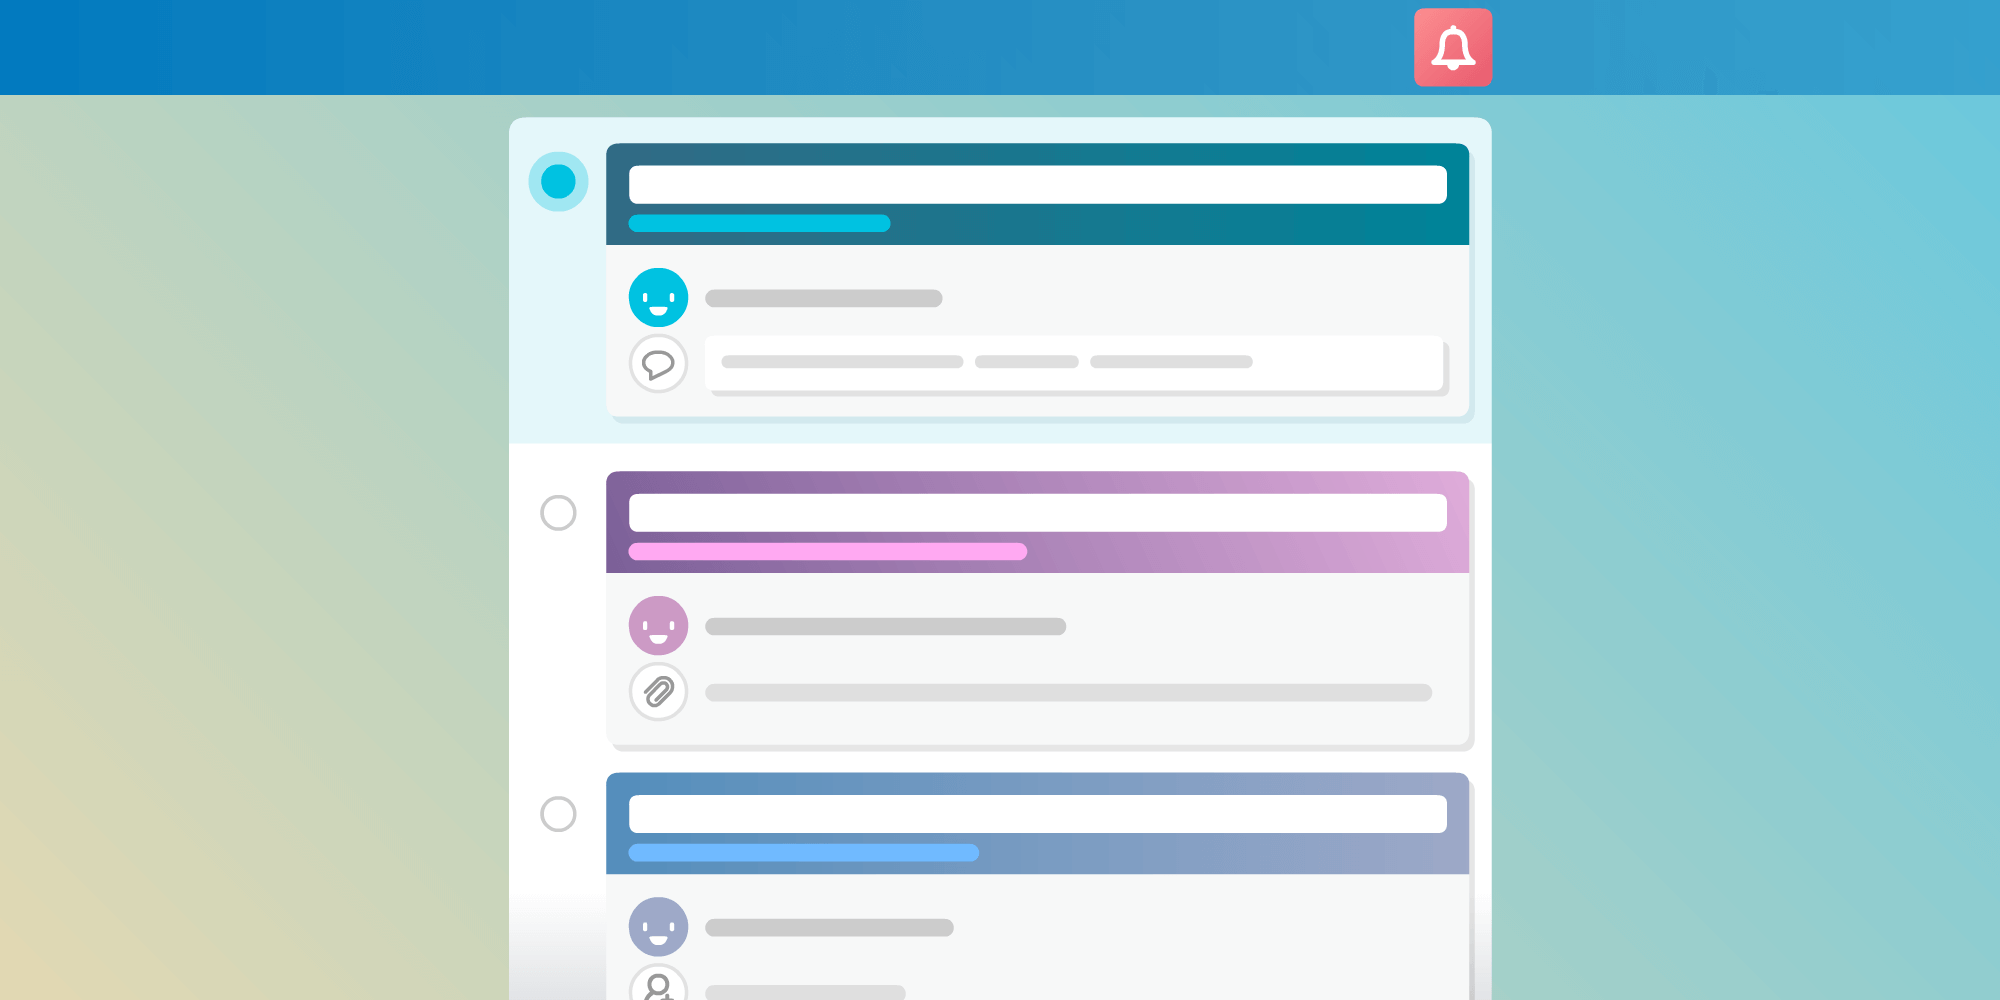 Trello Notifications Panel: How to manage notifications